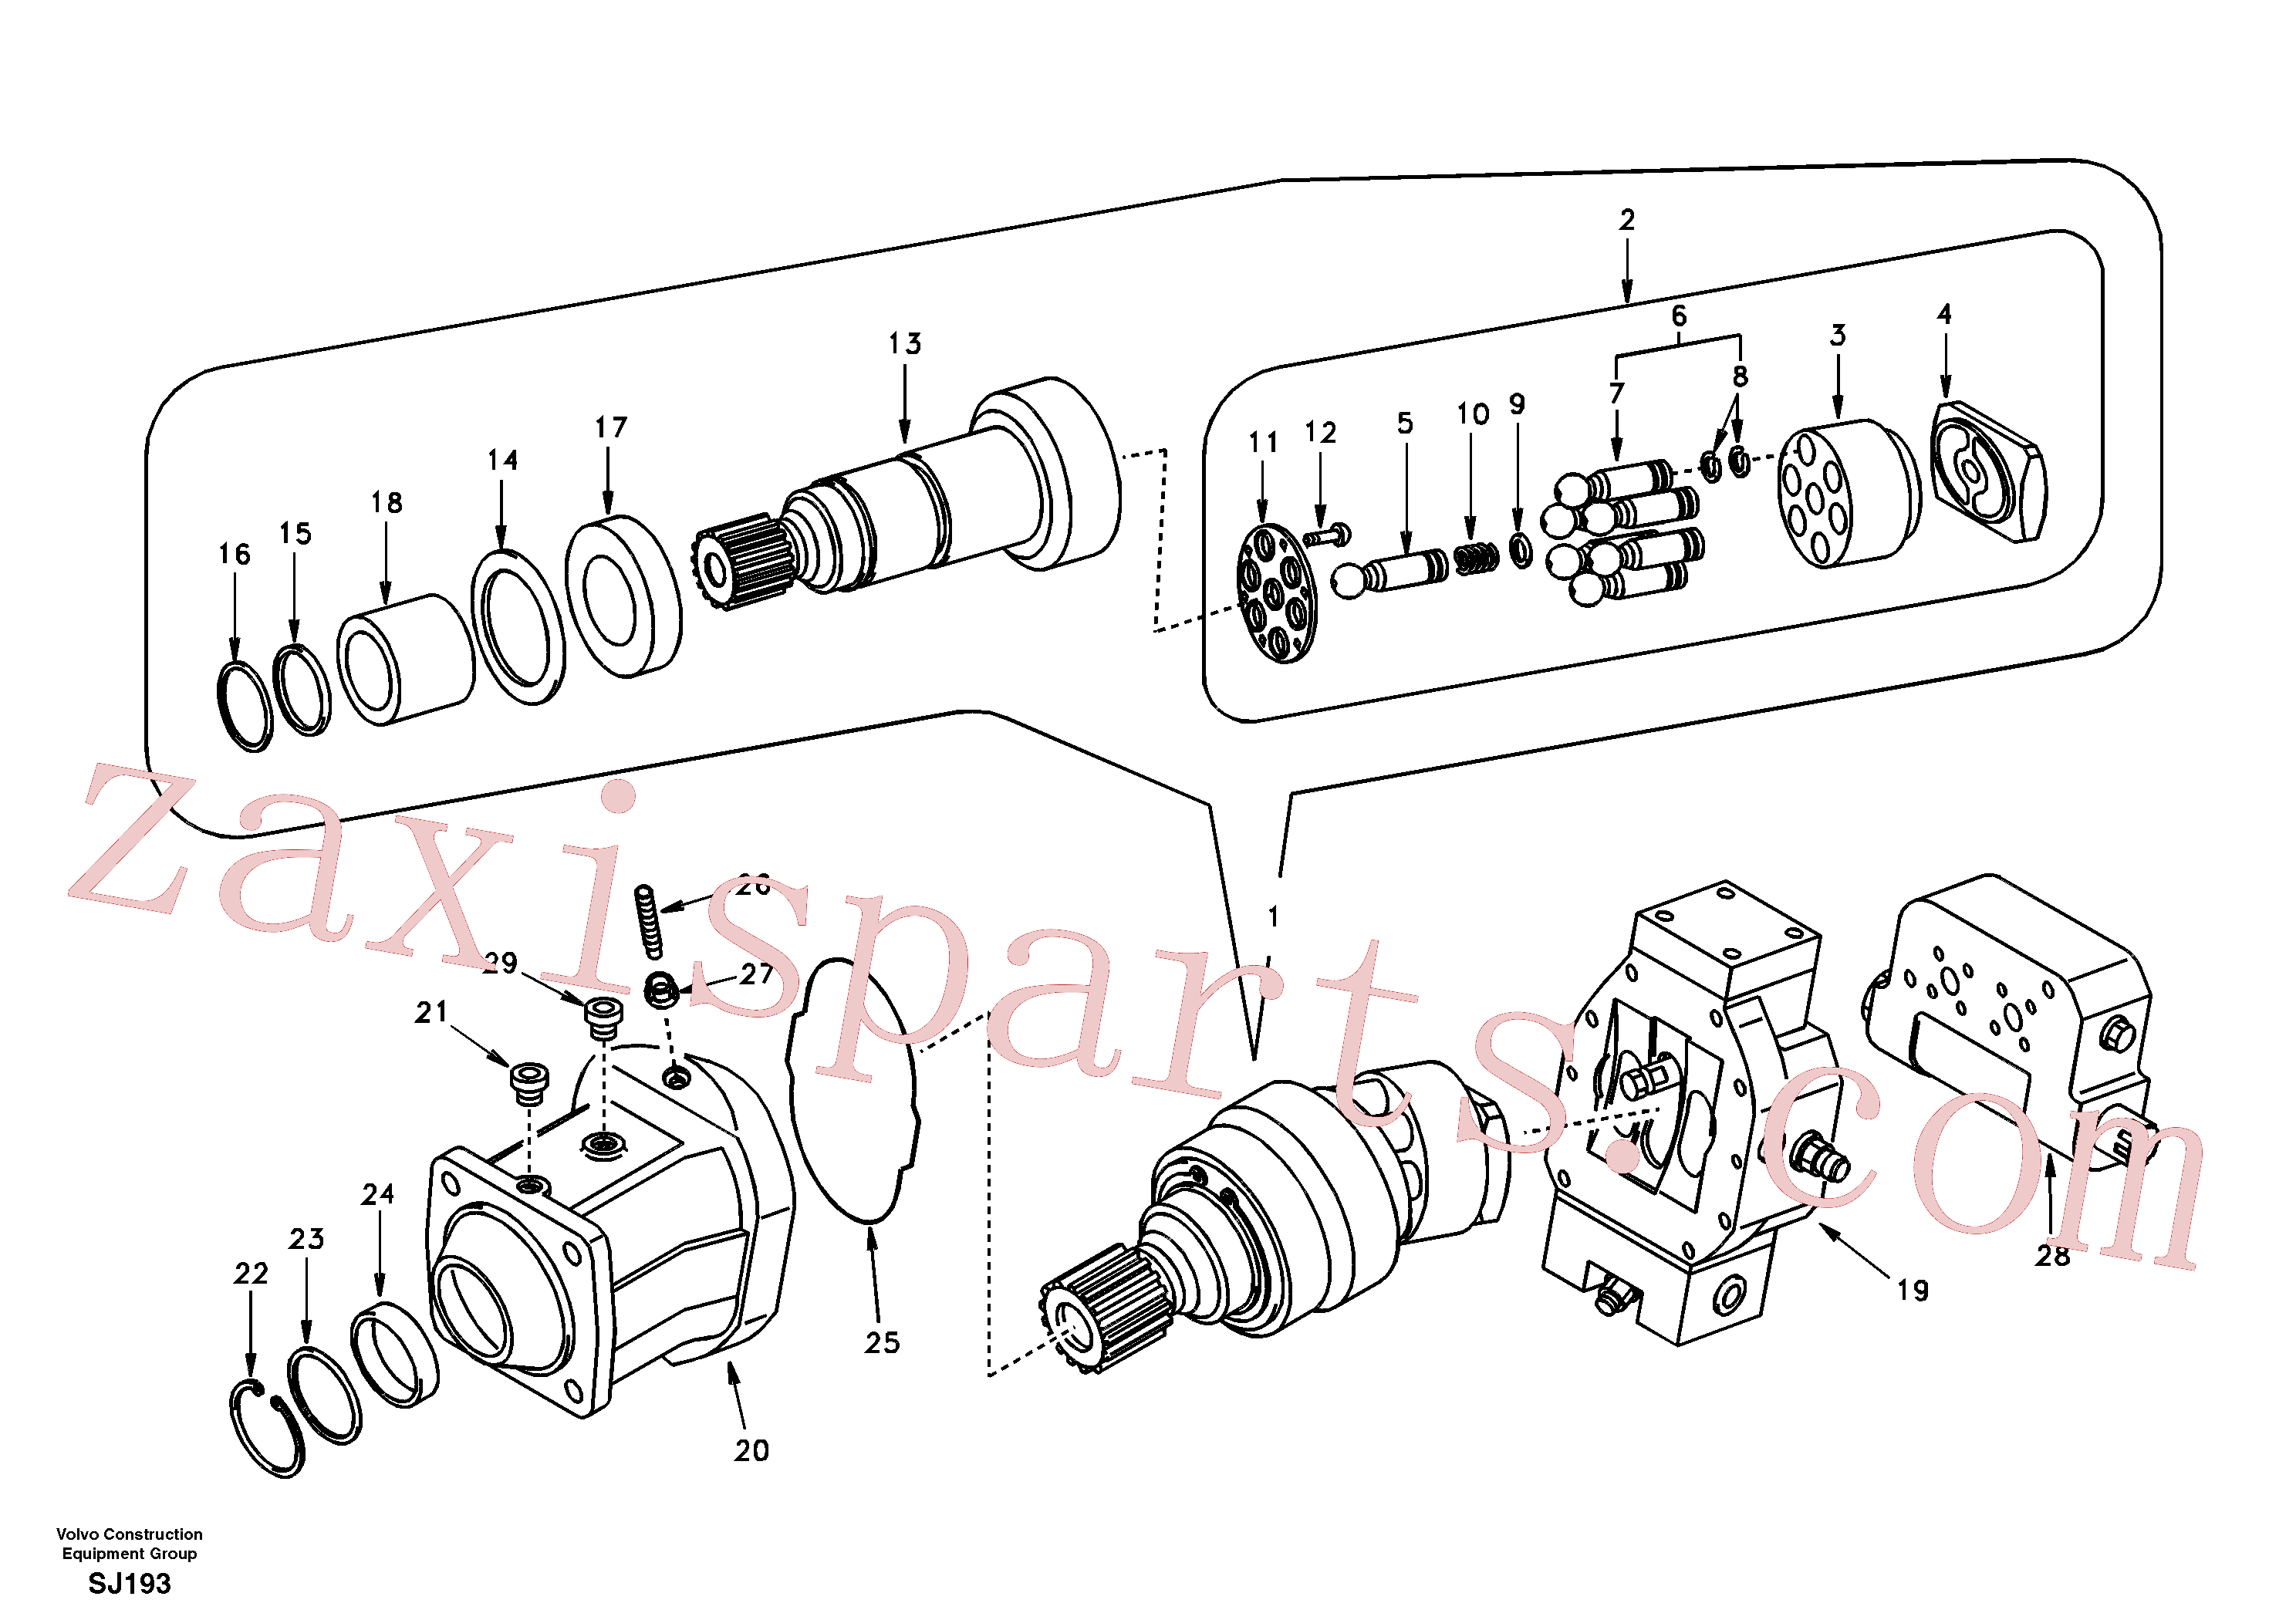 SA8230-30270 for Volvo Travel motor(SJ193 assembly)